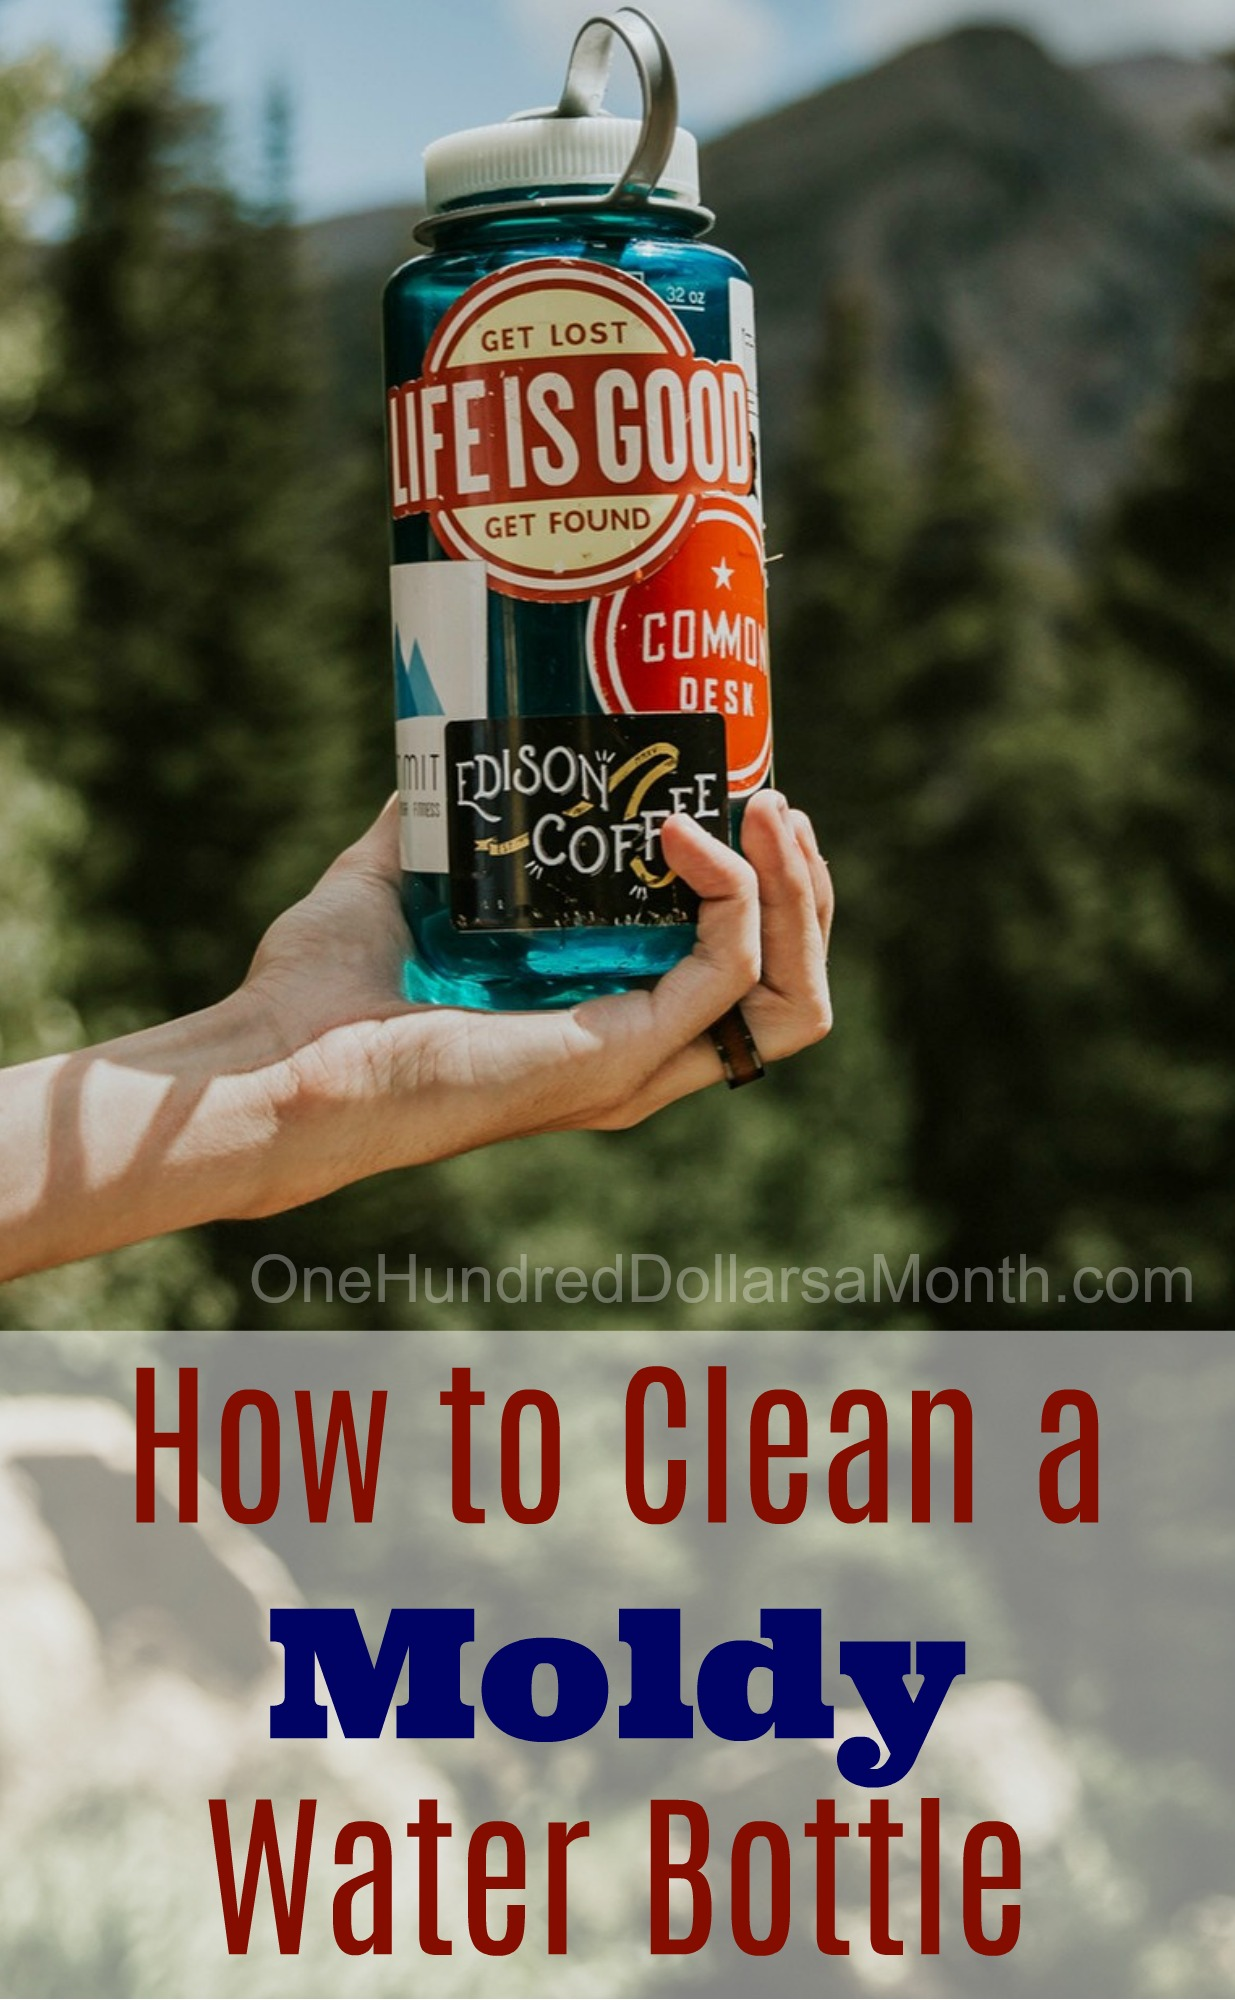 How to Clean a Moldy Water Bottle - One Hundred Dollars a Month